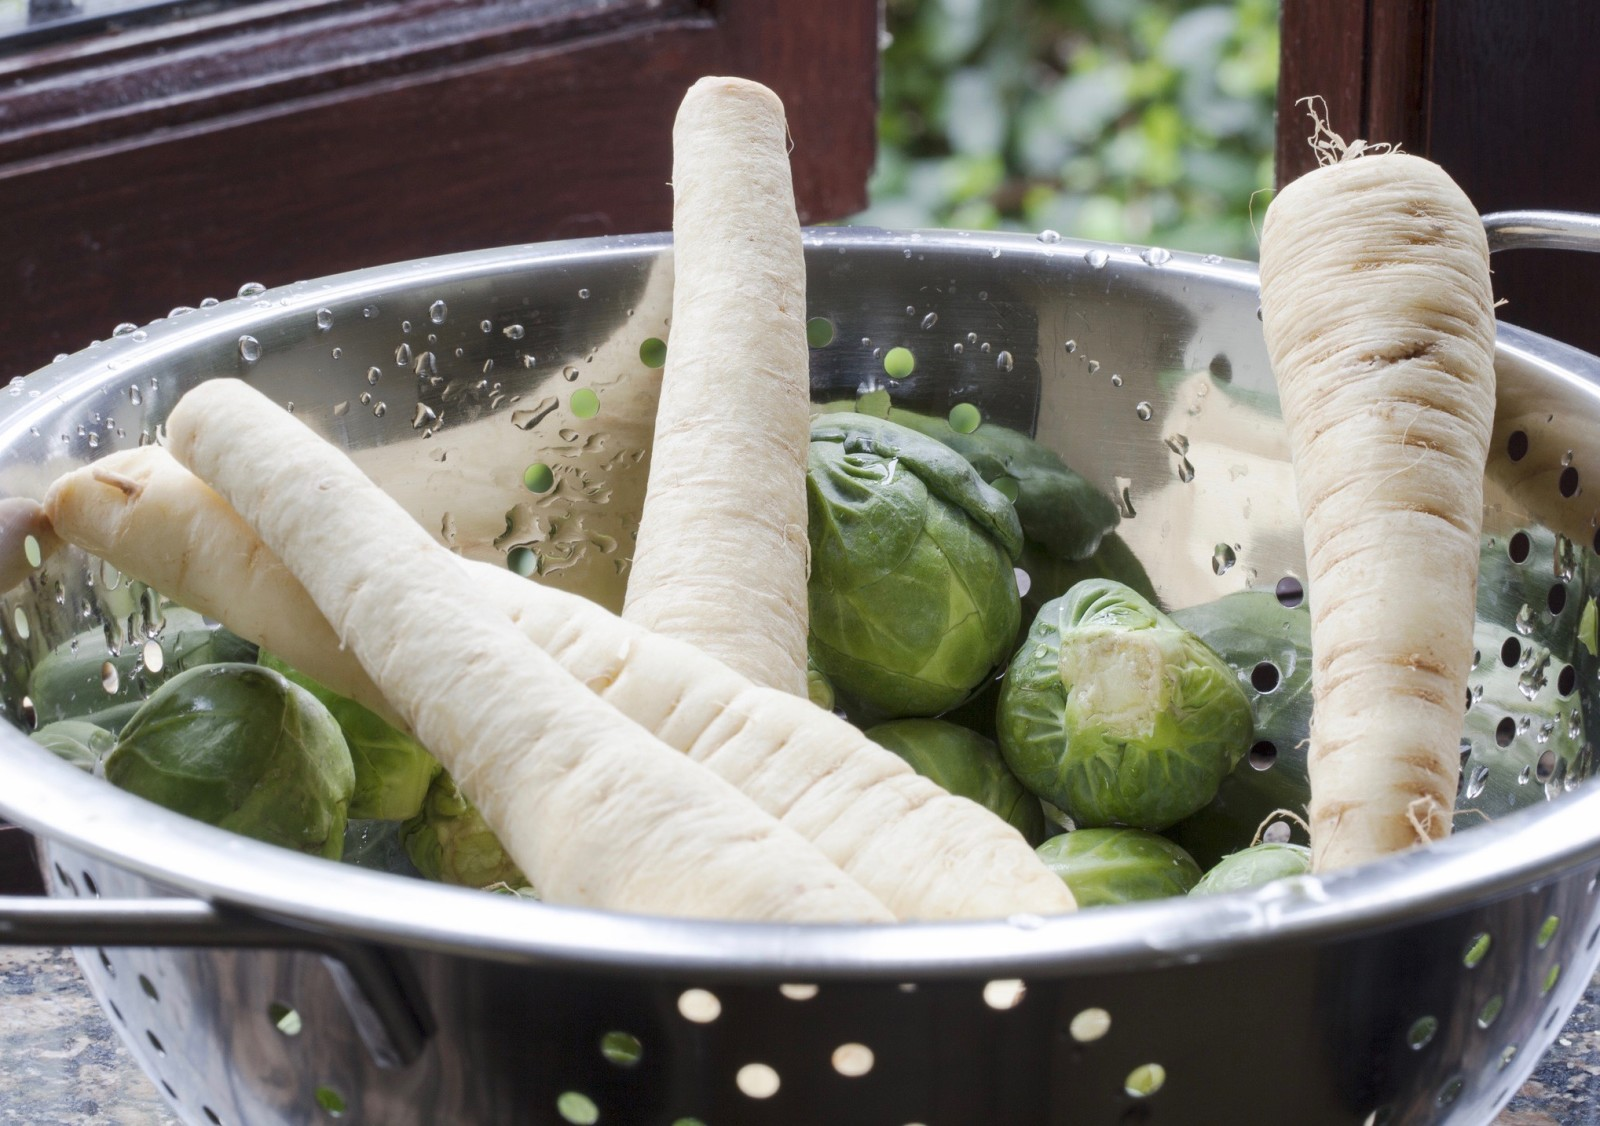 Parsnips and Brussels Sprouts